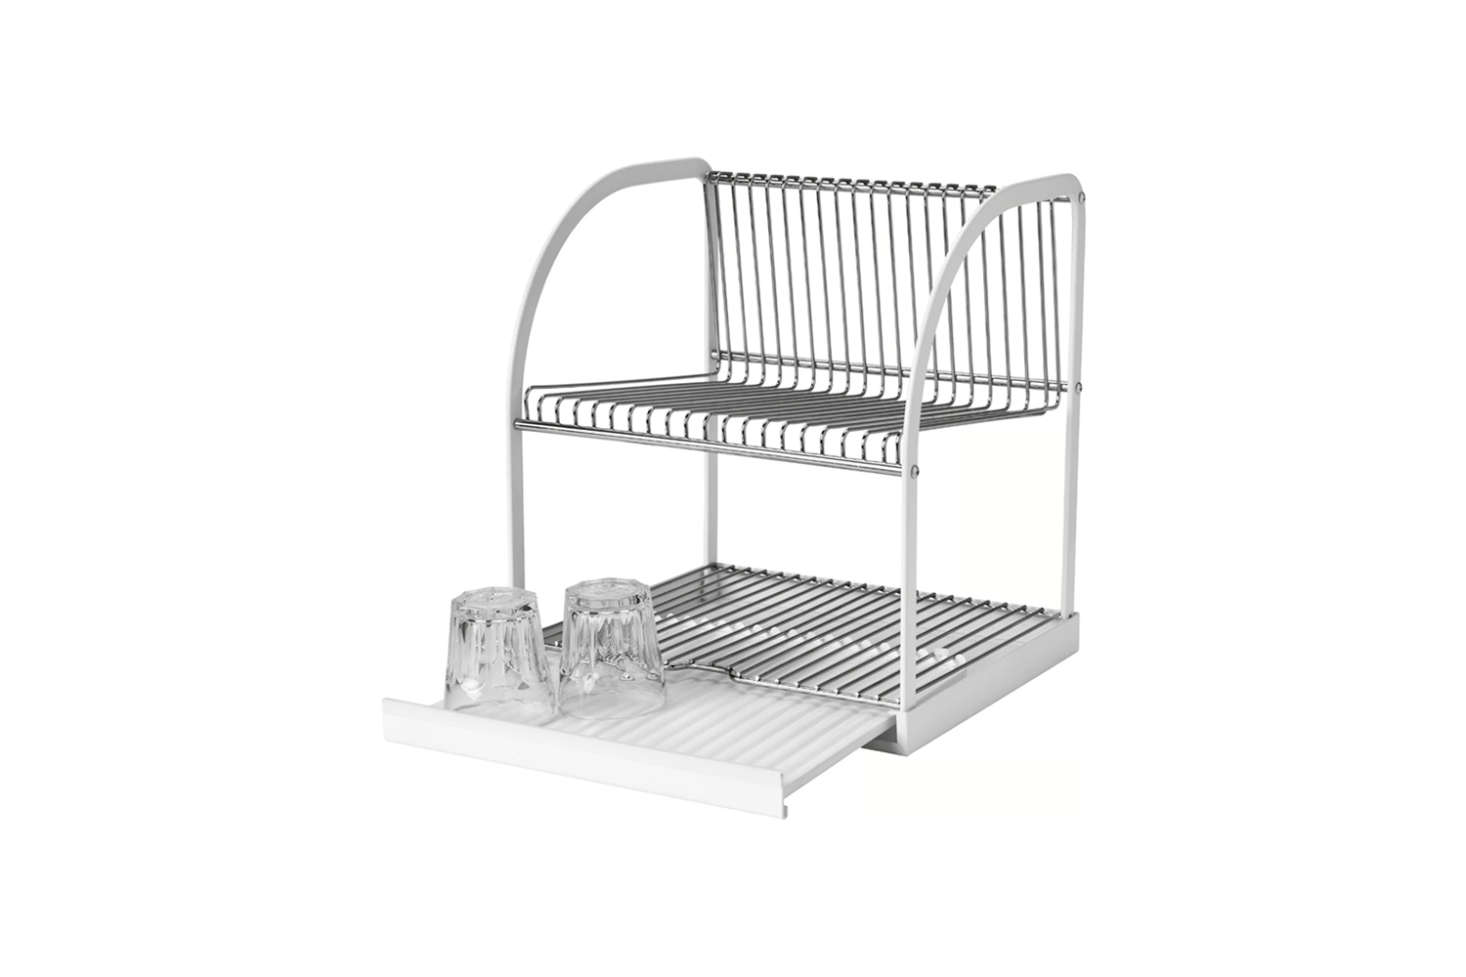 The Ikea Bestående Dish Drainer is made with silver-tone metal and white housing; $.99.